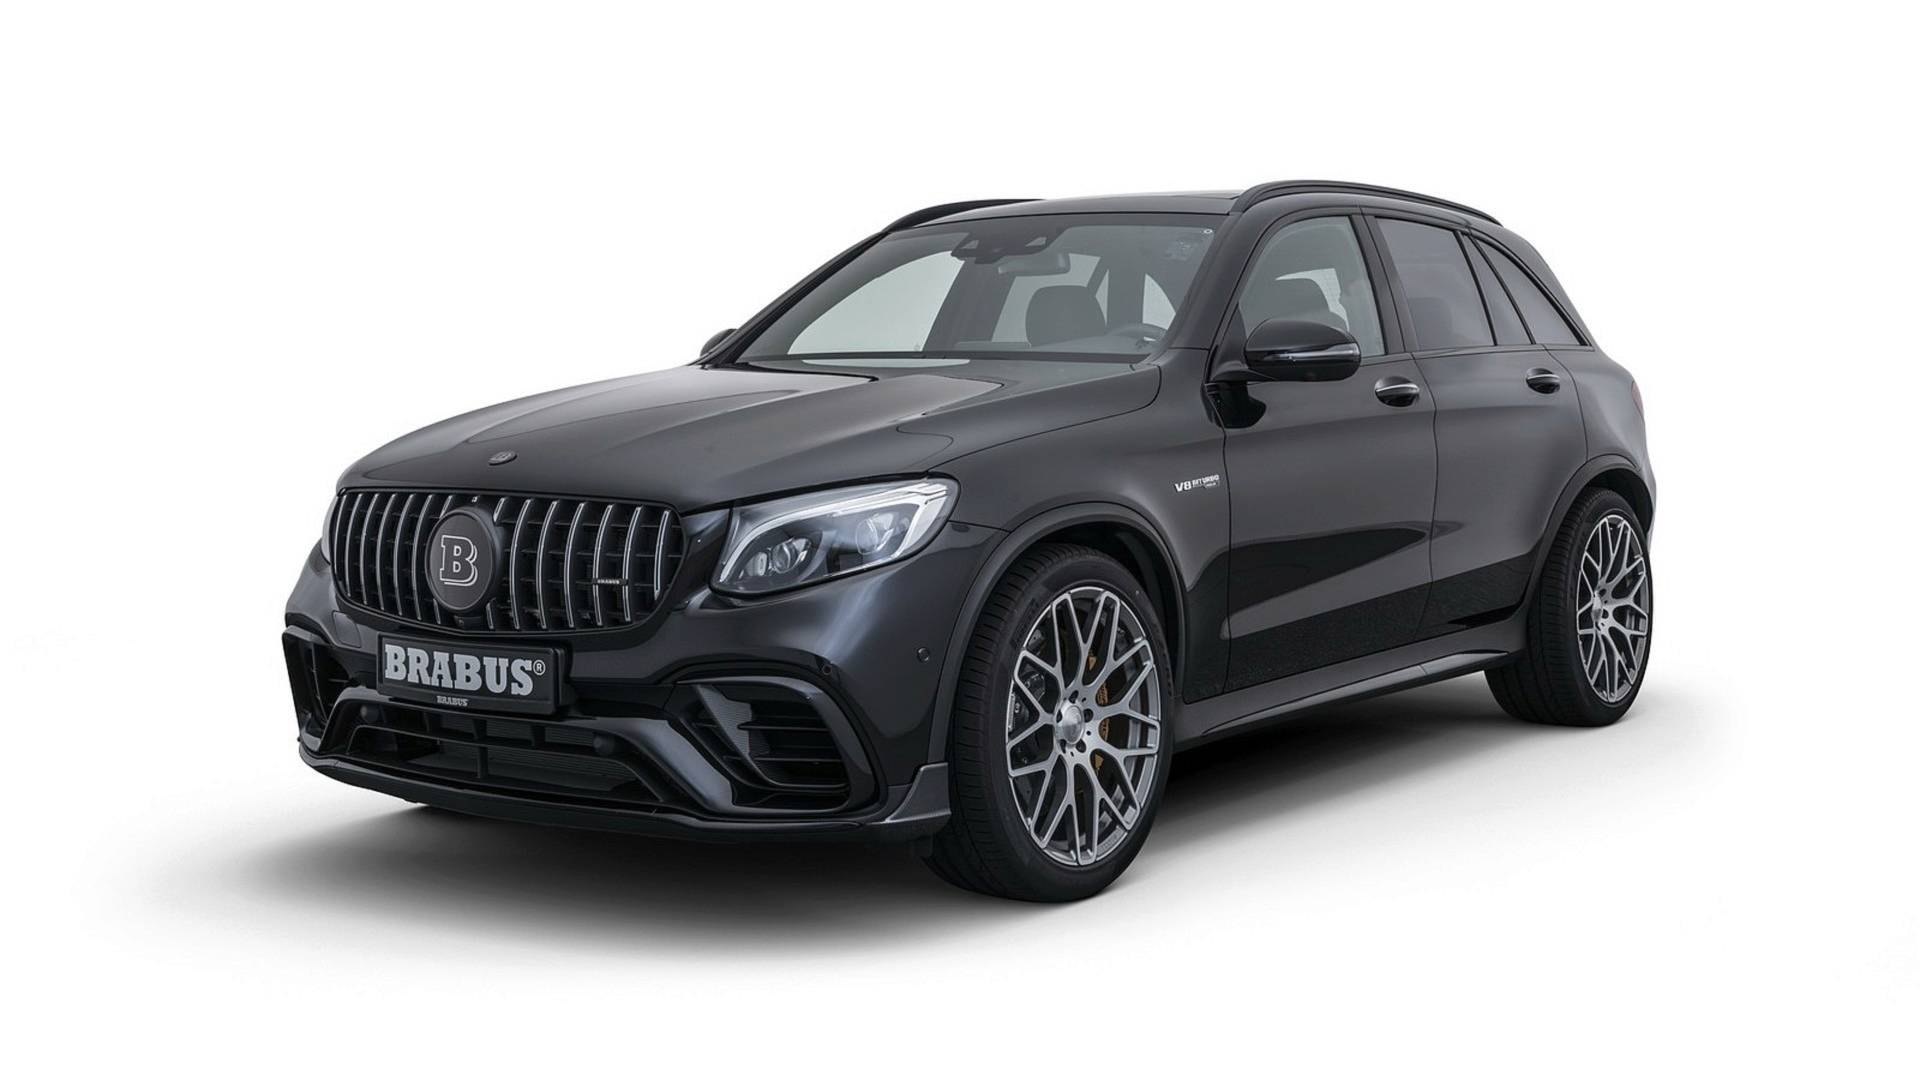 Mercedes-AMG GLC 63 S Gets Power Infusion From Brabus